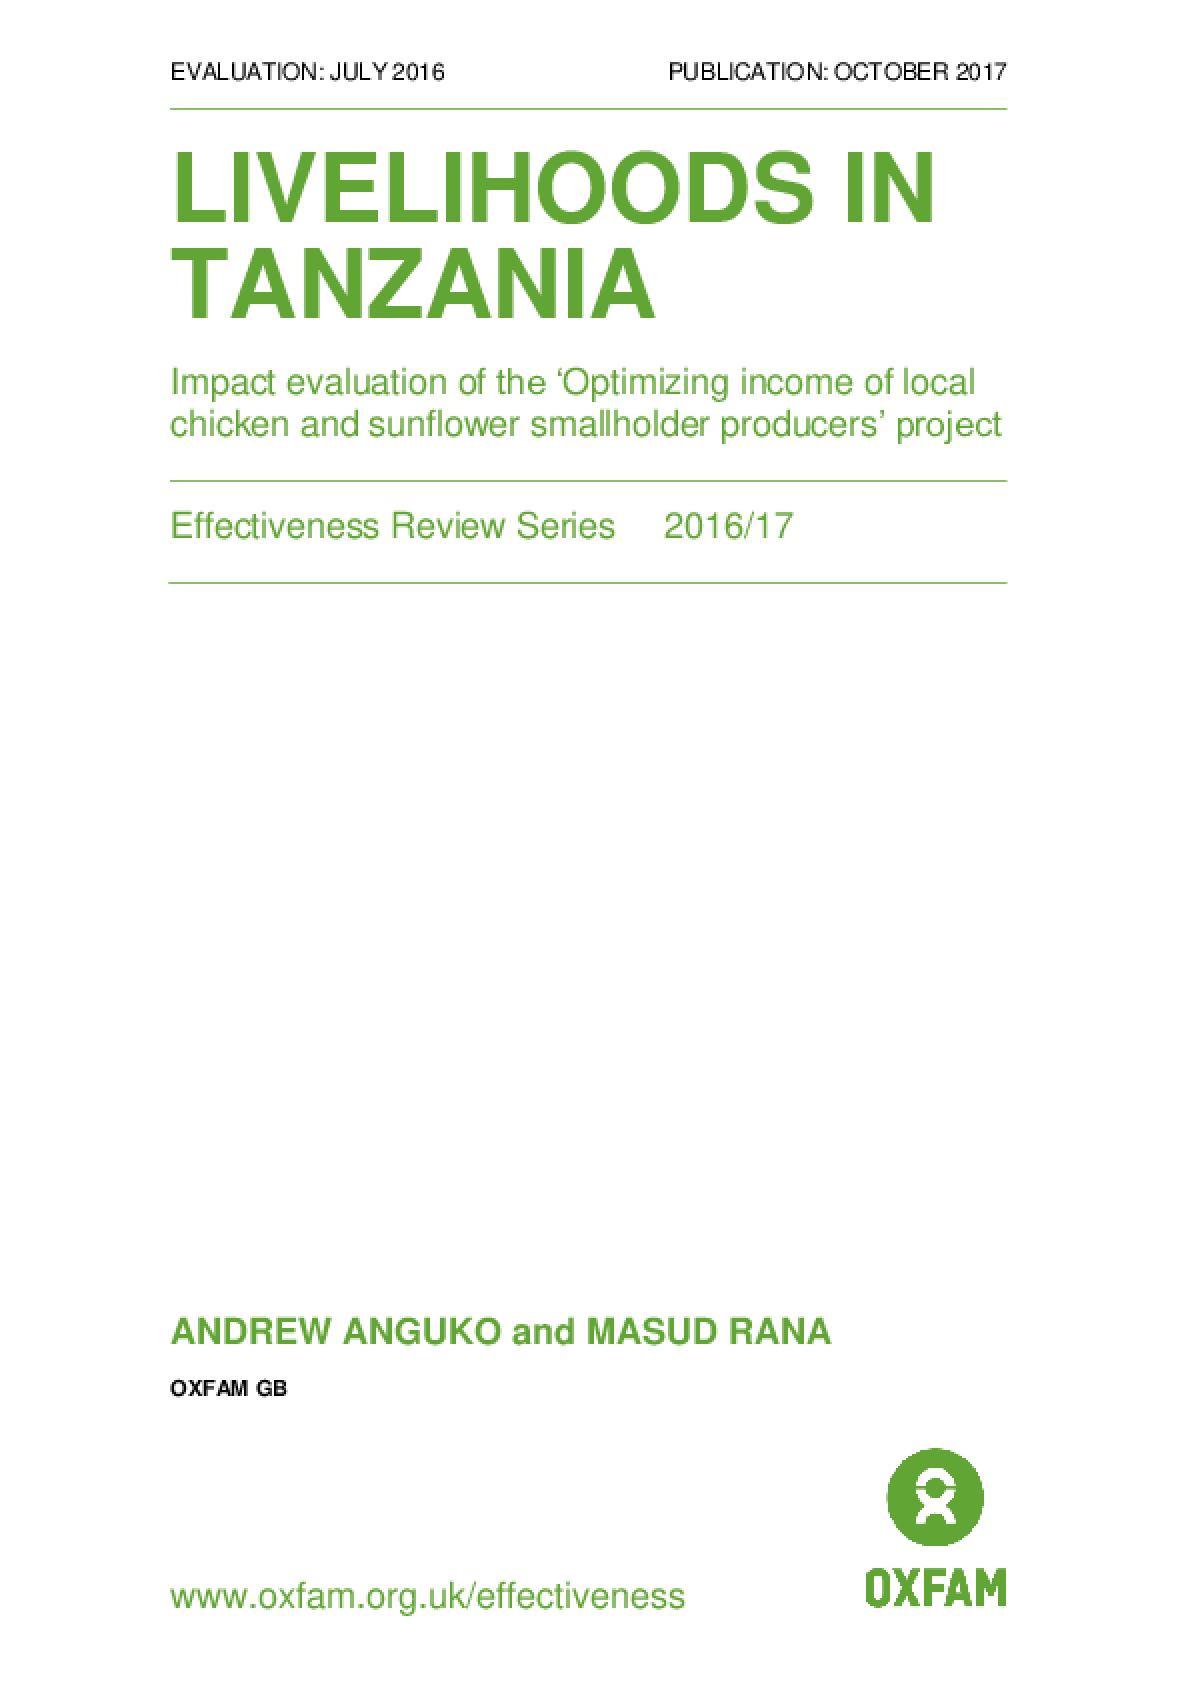 Livelihoods in Tanzania: Impact evaluation of the 'Optimizing income of local chicken and sunflower smallholder producers' project